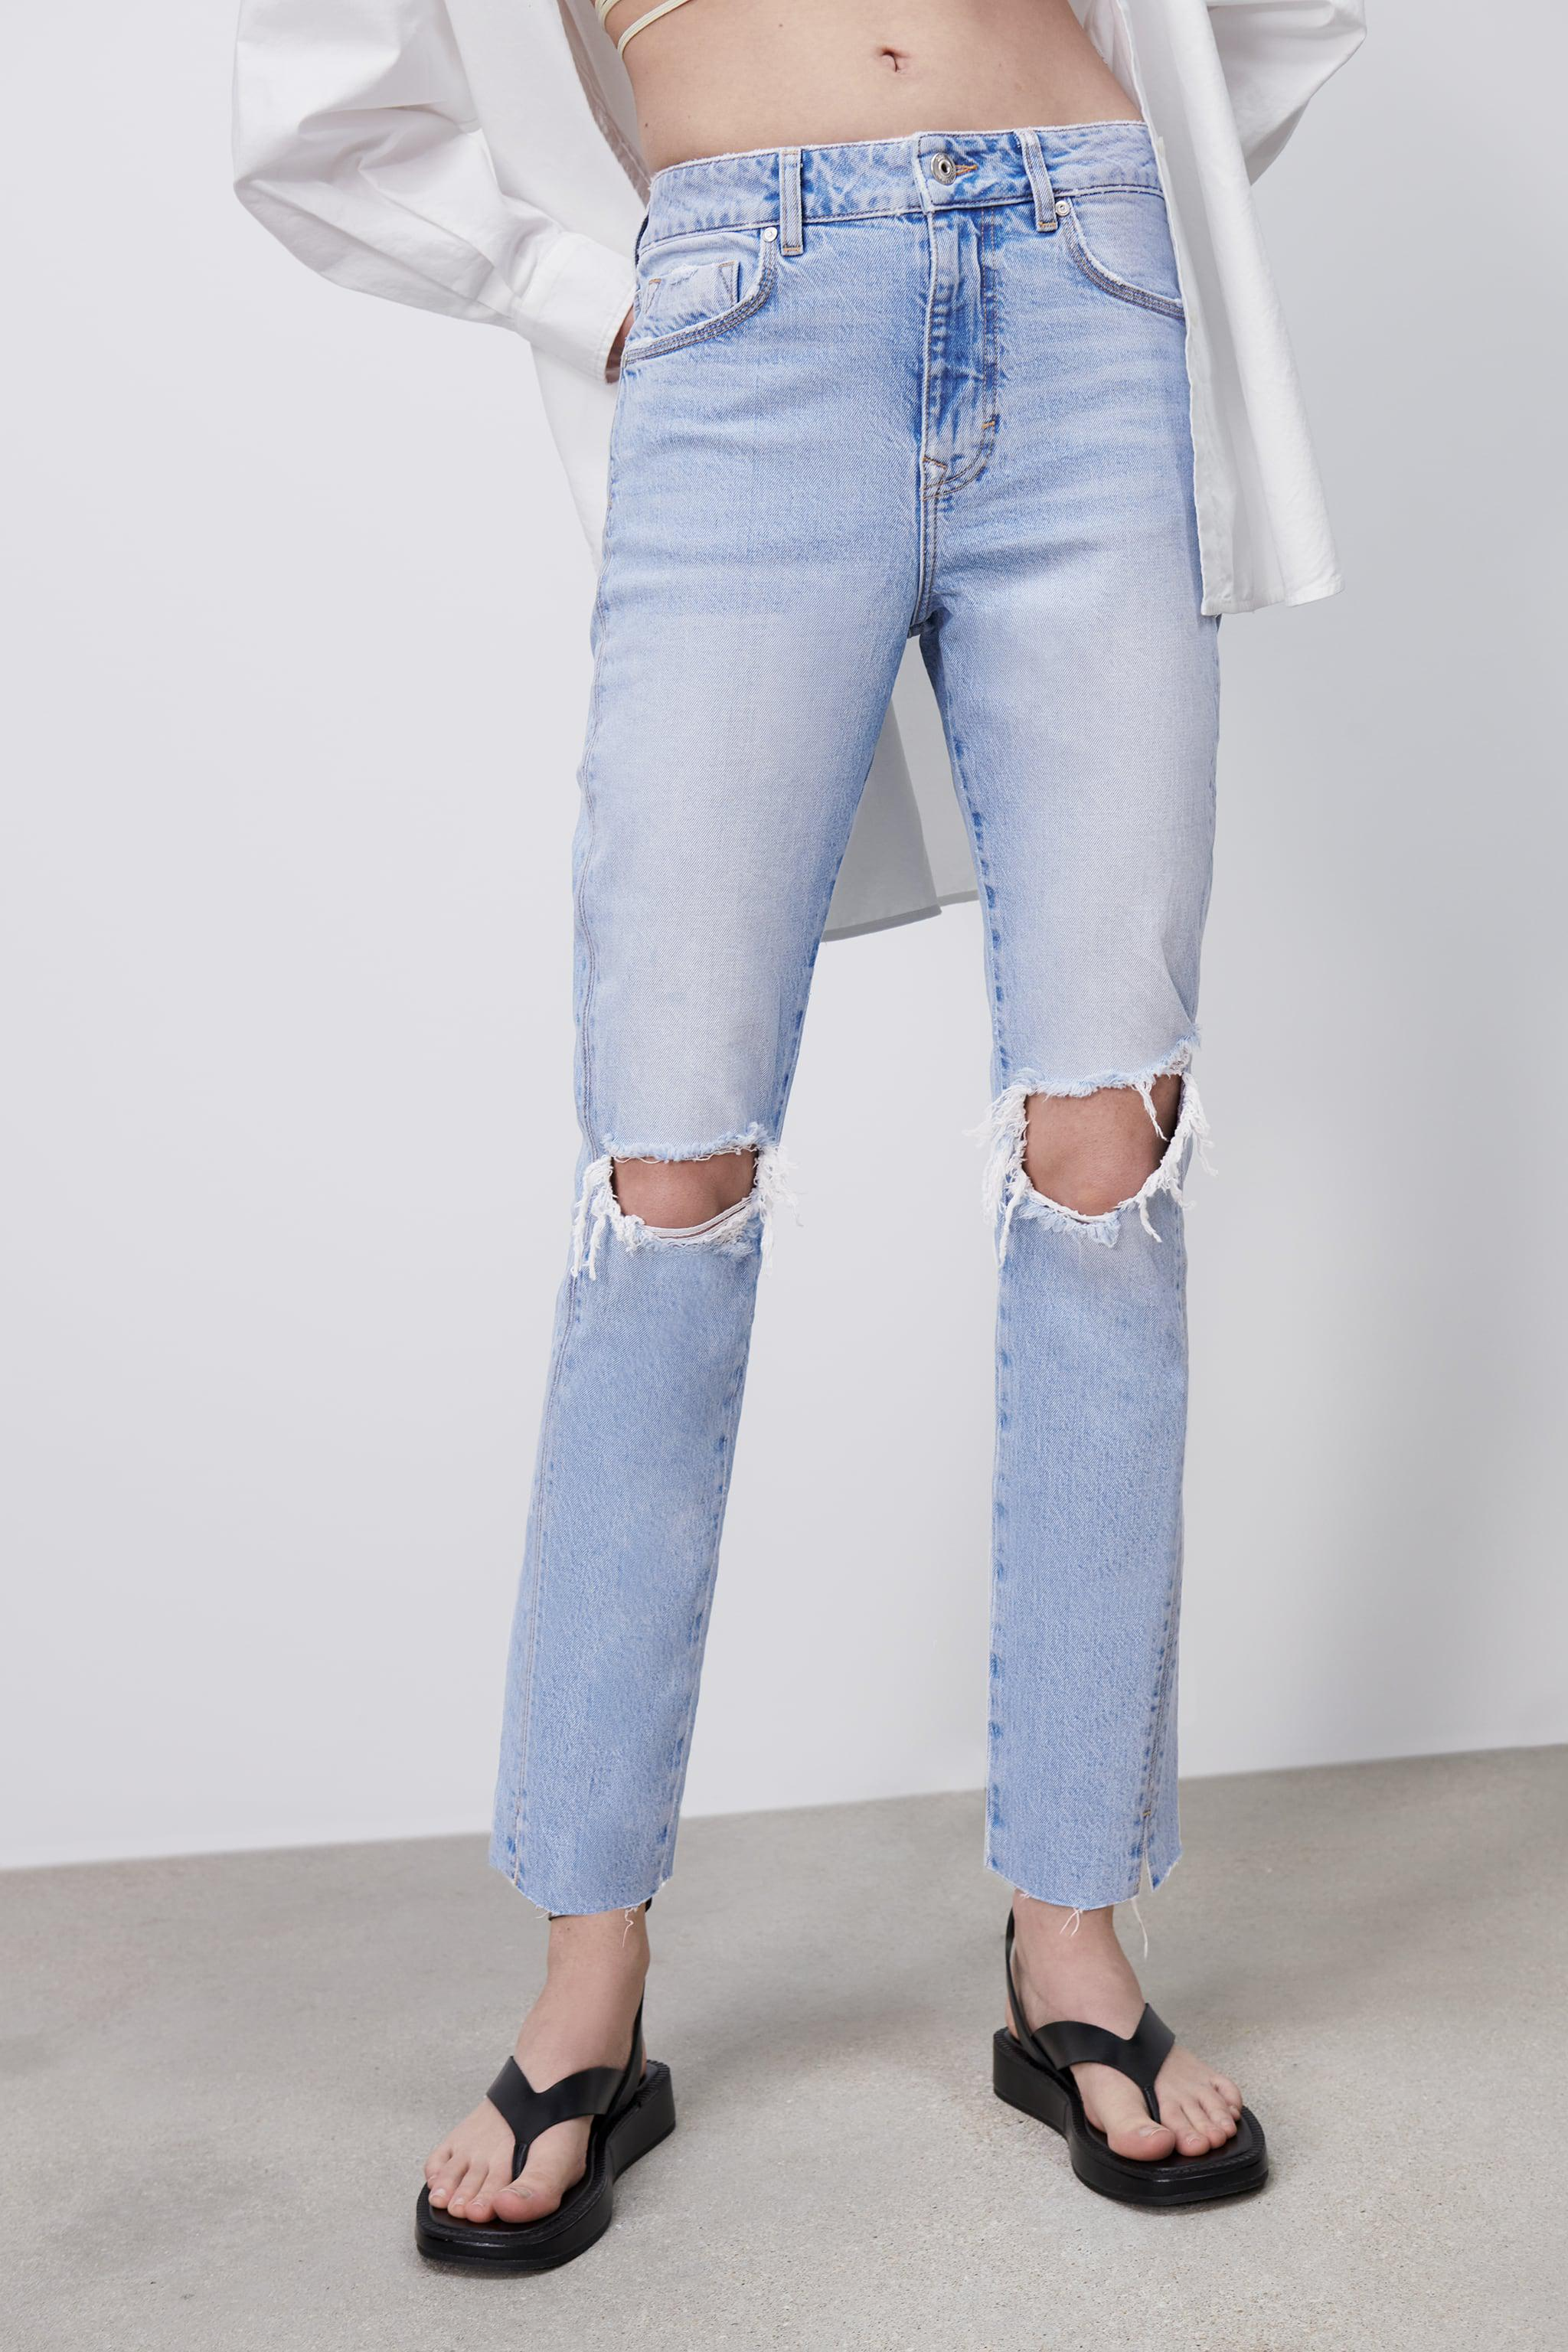 Z1975 HIGH RISE JEANS 1